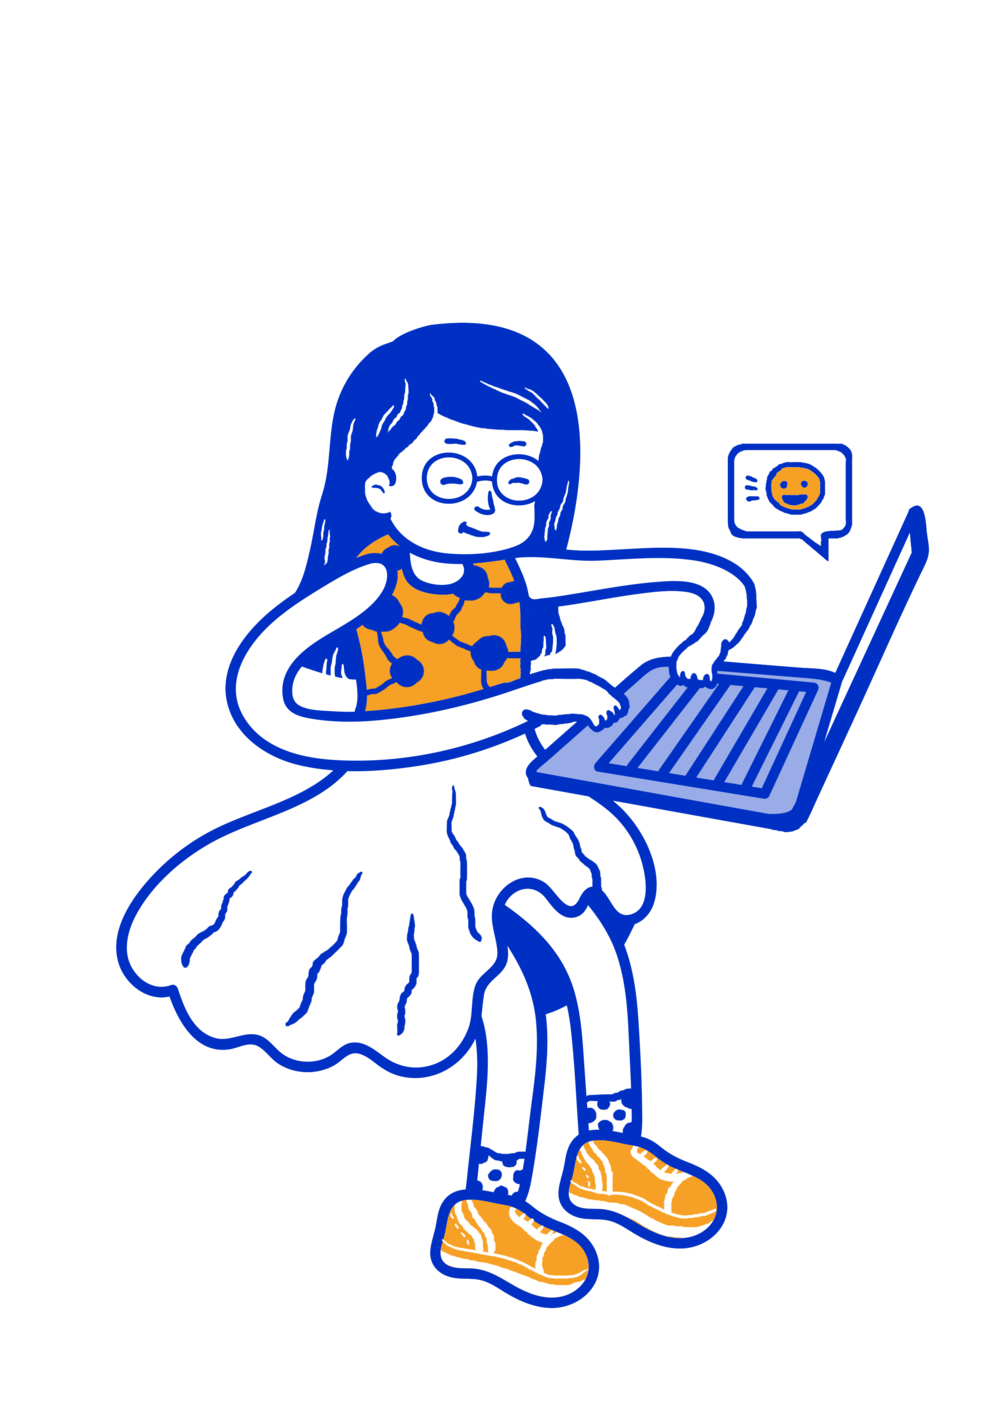 LAPTOP_GIRL.png